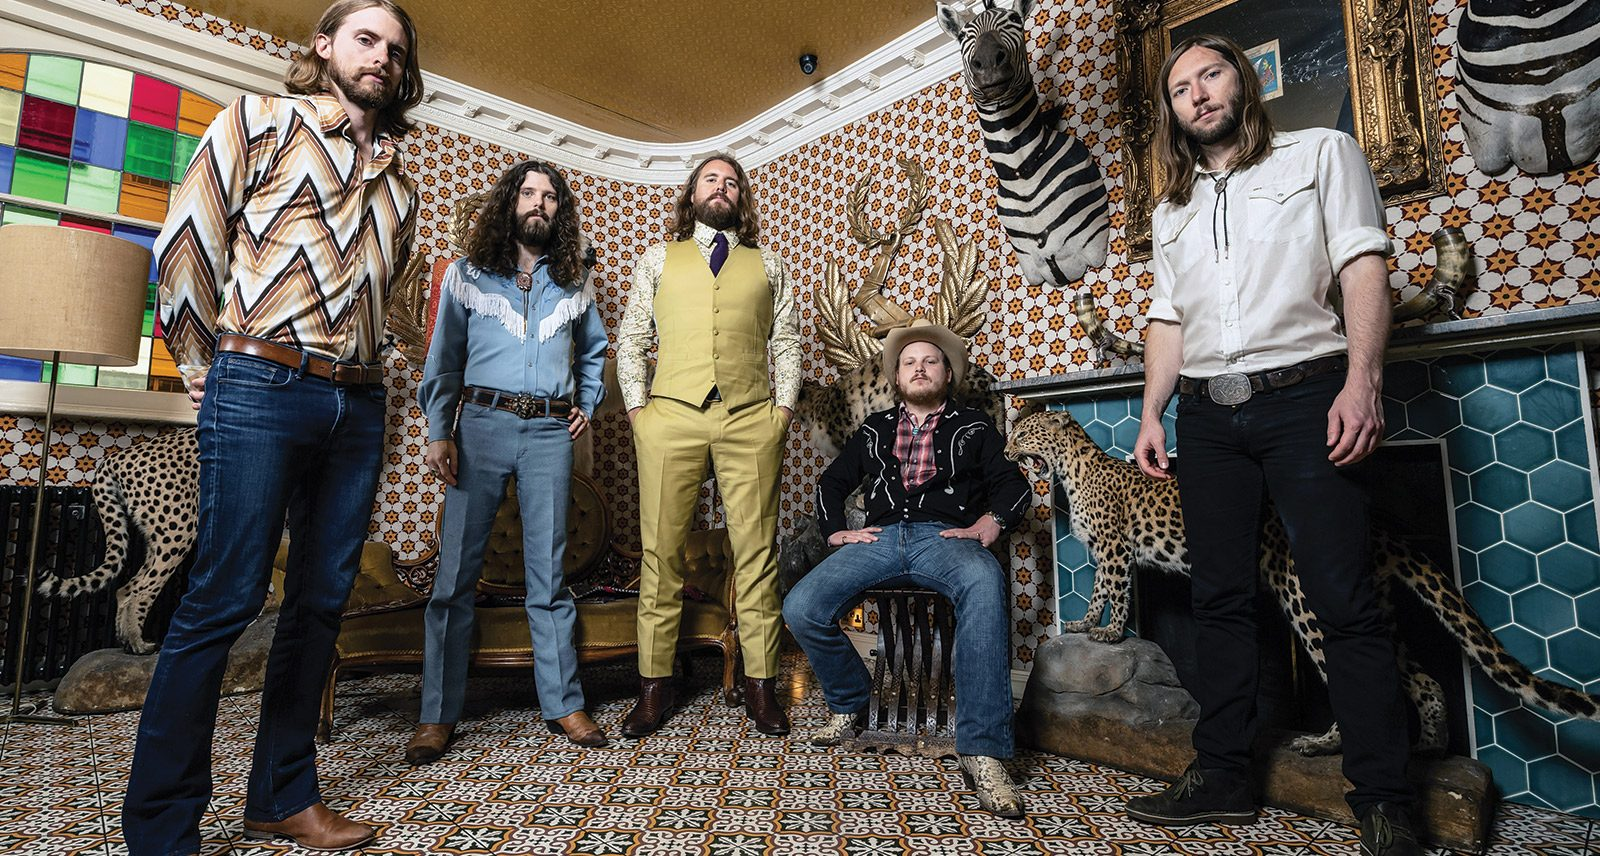 Movember Stories: The Sheepdogs' Sam Corbett Opens Up About His Cancer Diagnosis